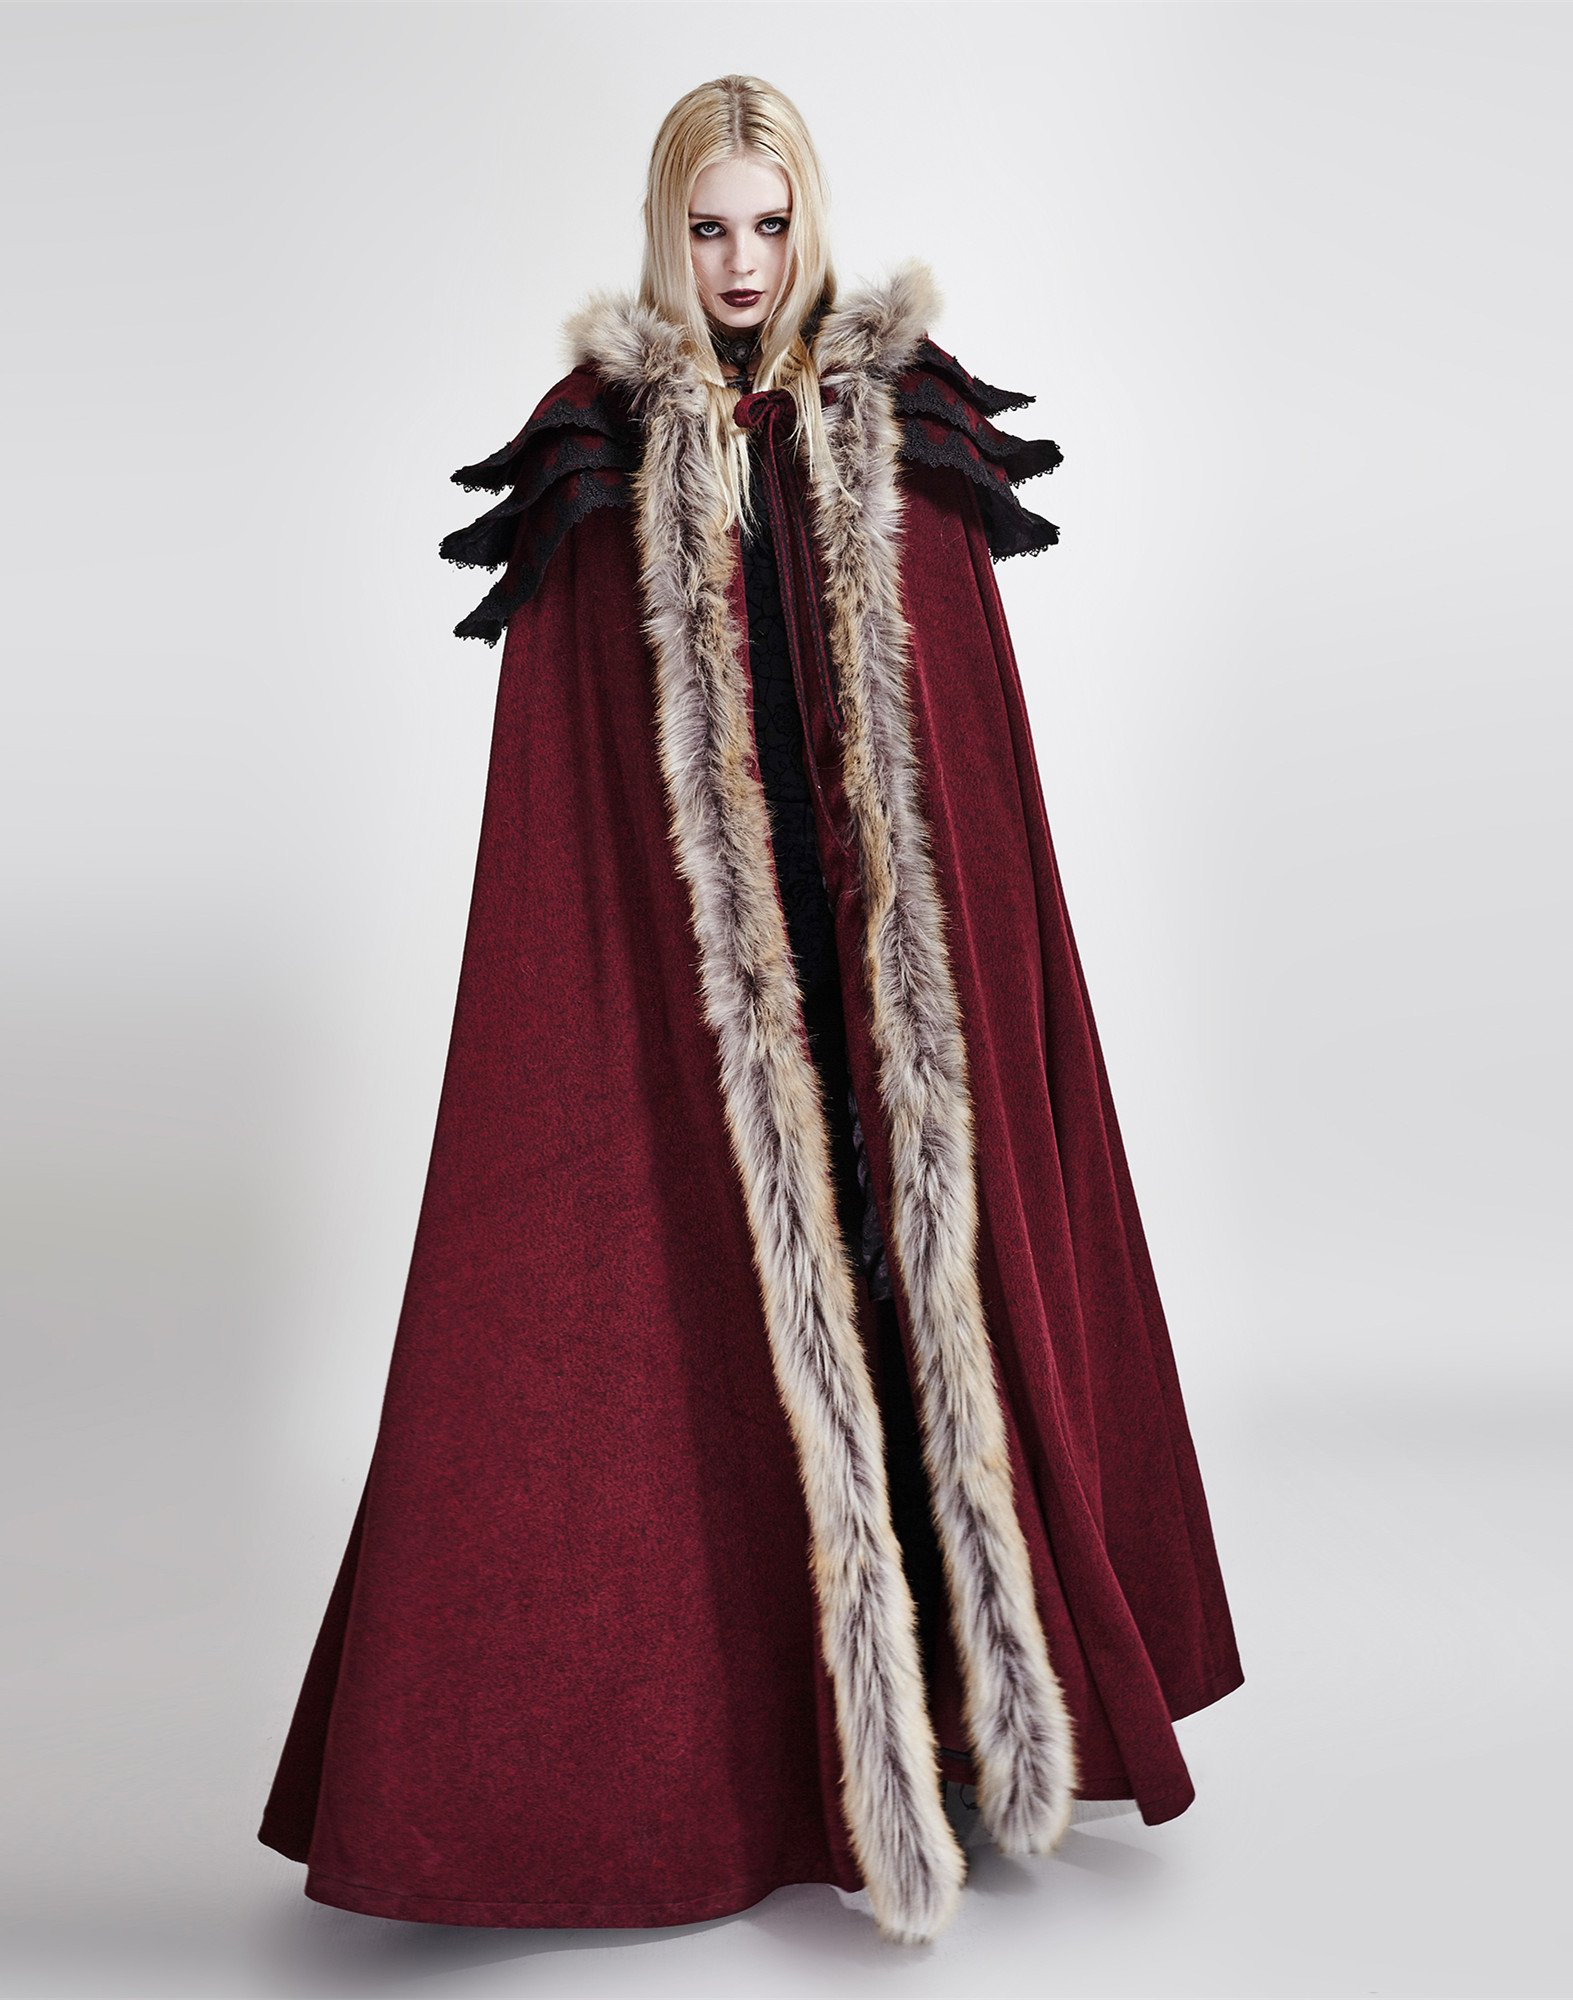 Punk Rave Women's Medieval Fluffy Faux Fur Trimmed Cape Full Length Hooded Cloak Coat(Red) by Punk Rave (Image #4)